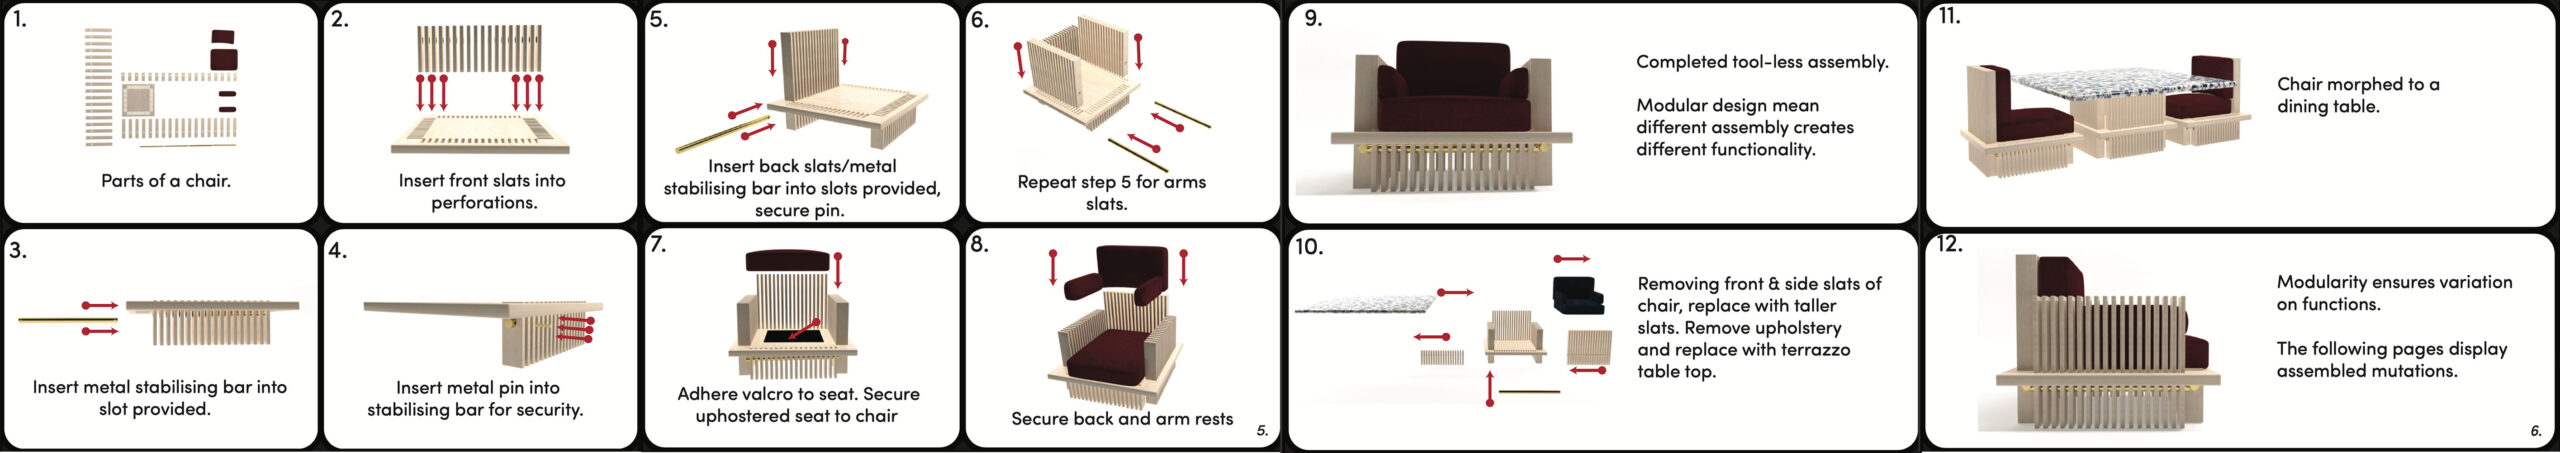 These images shows the tool-less assembly of the range and also the modular functionality.